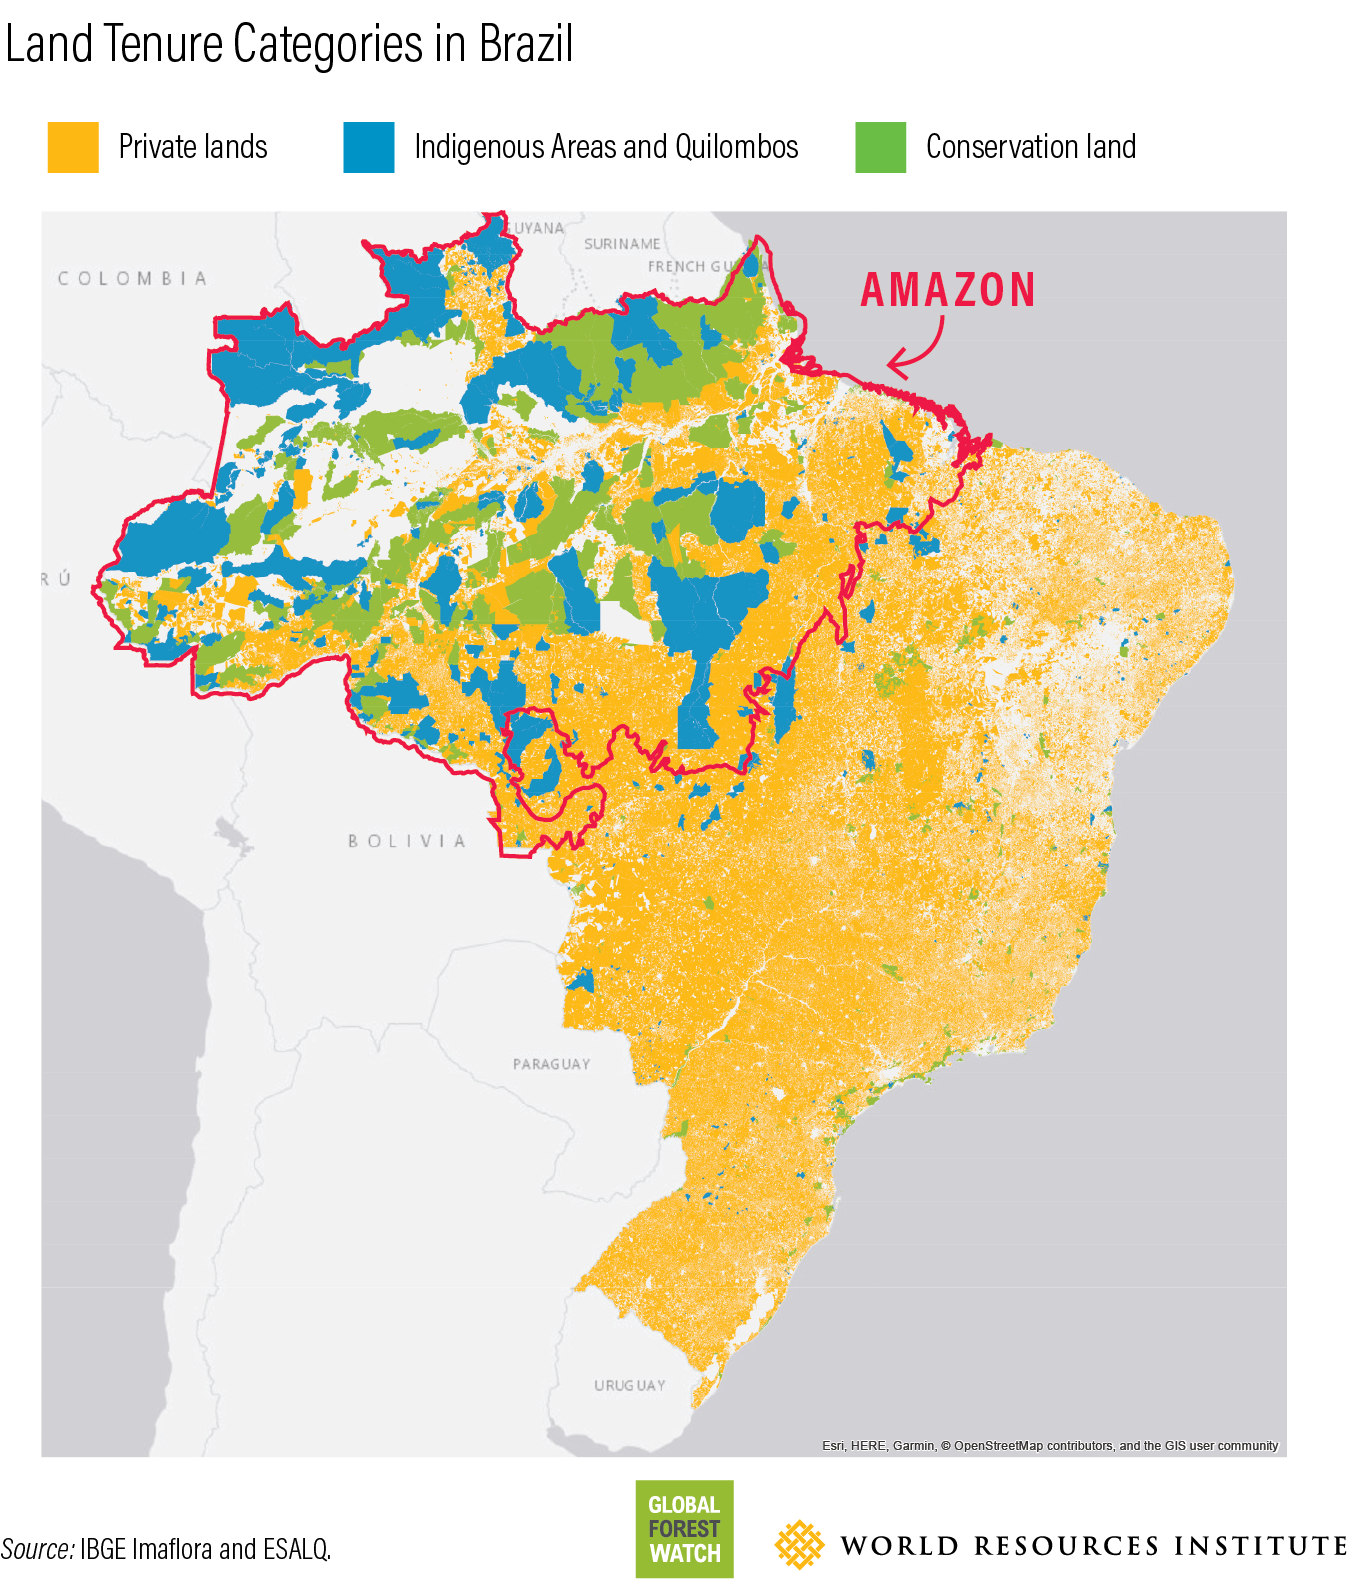 land use categories in Brazil